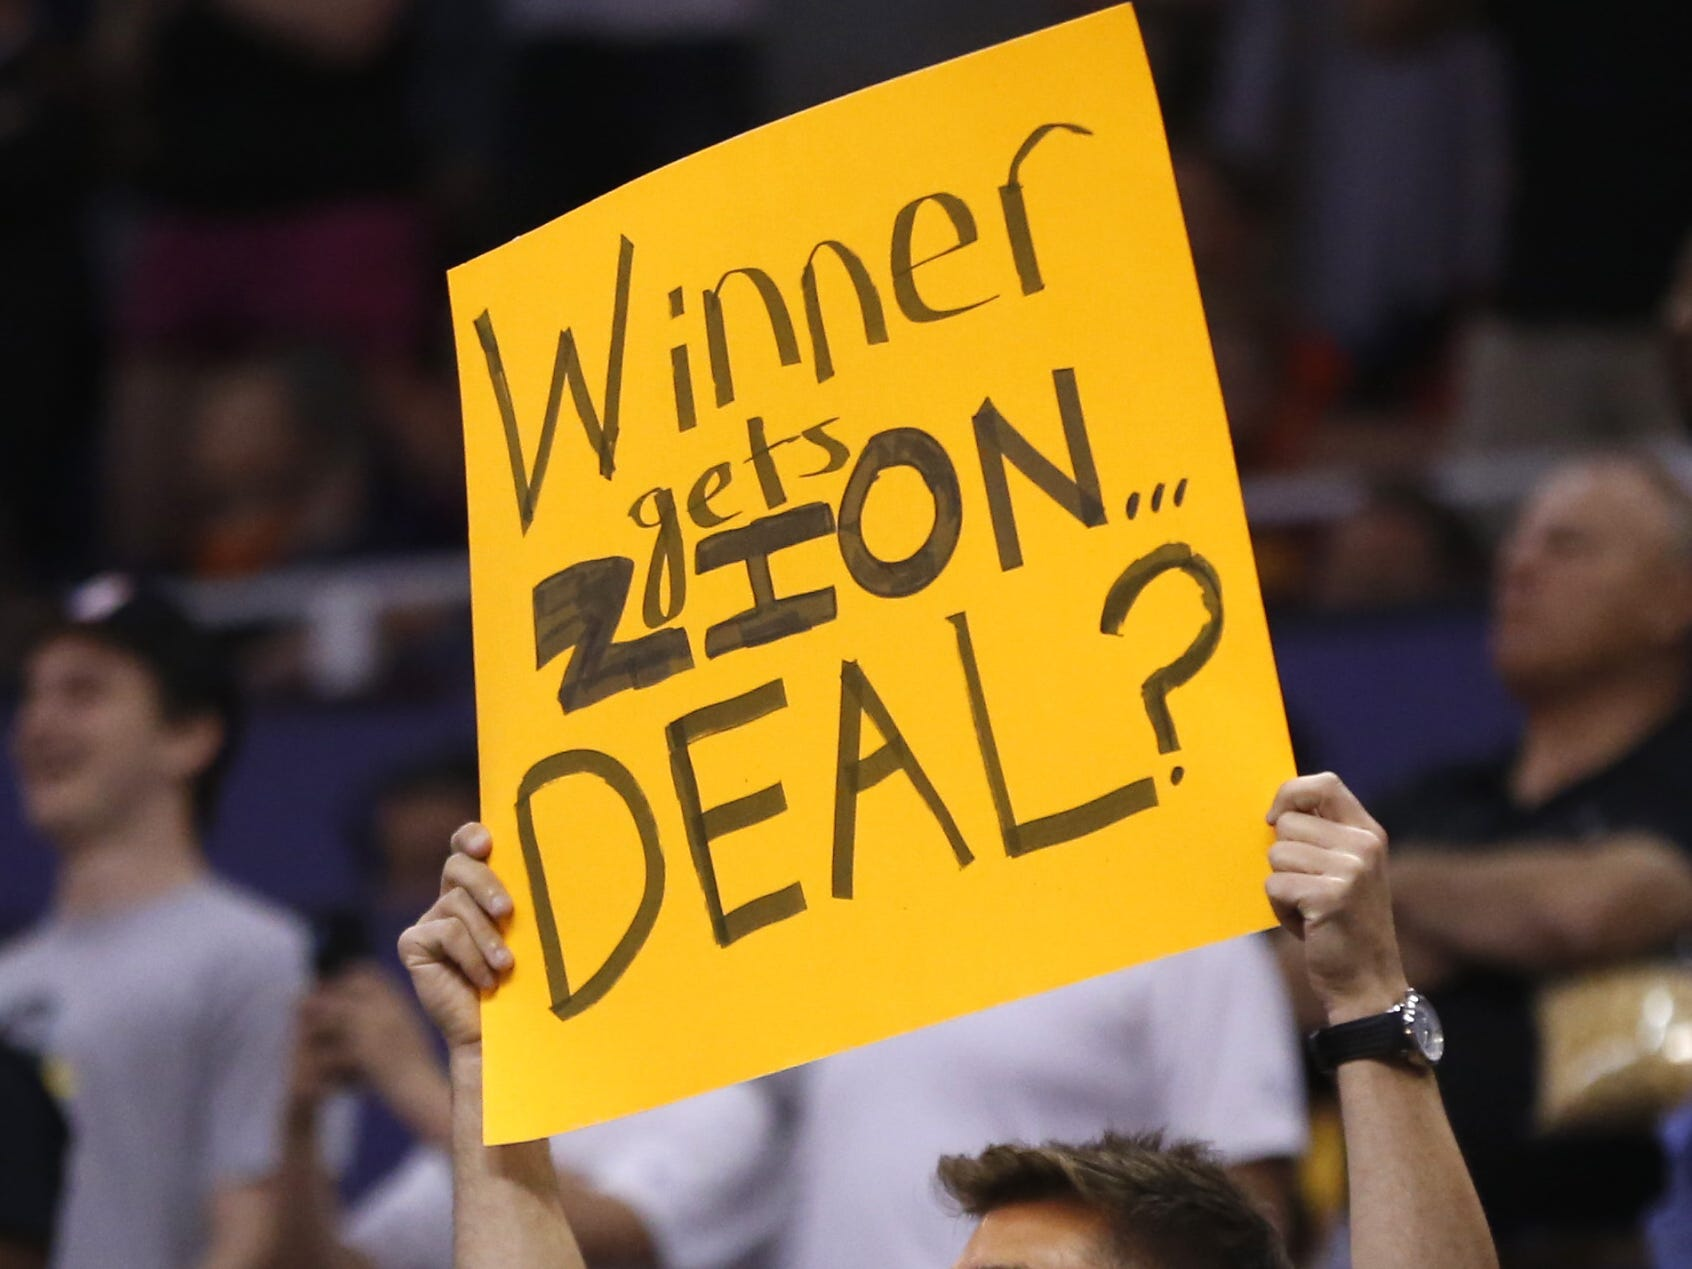 "A fan holds up a sign saying ""Winner gets Zion... Deal?"" during the first half at Talking Stick Resort Arena in Phoenix, Ariz. on April 1, 2019."